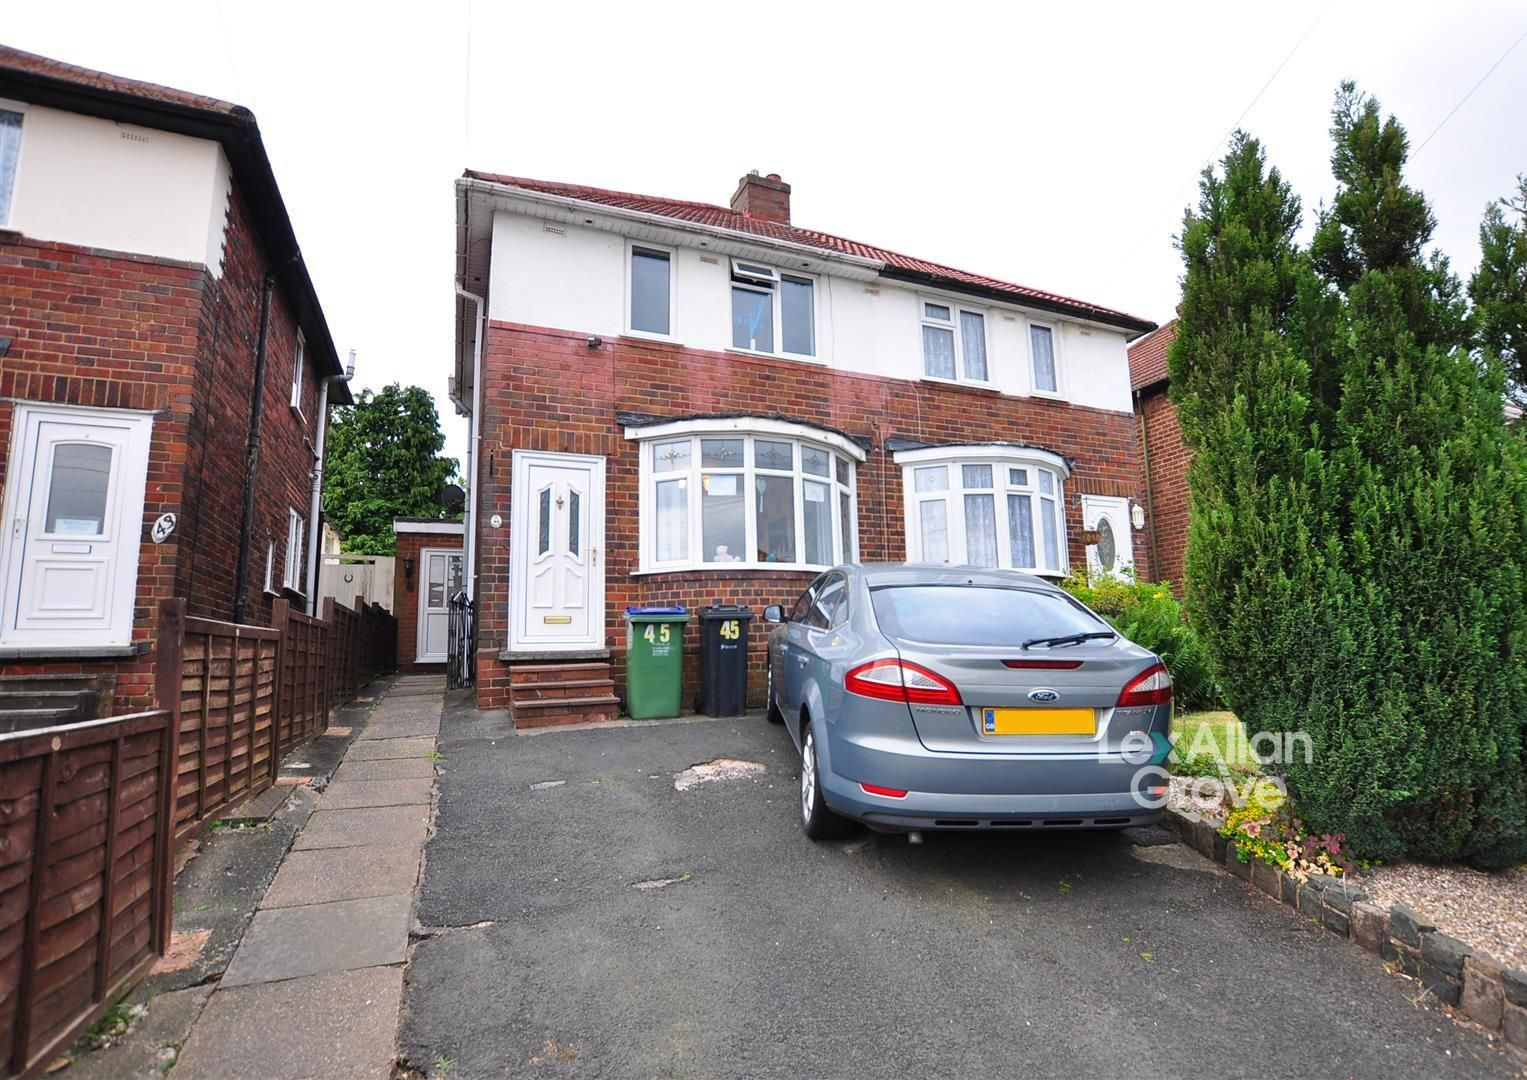 2 bed semi-detached for sale in Tividale, B69